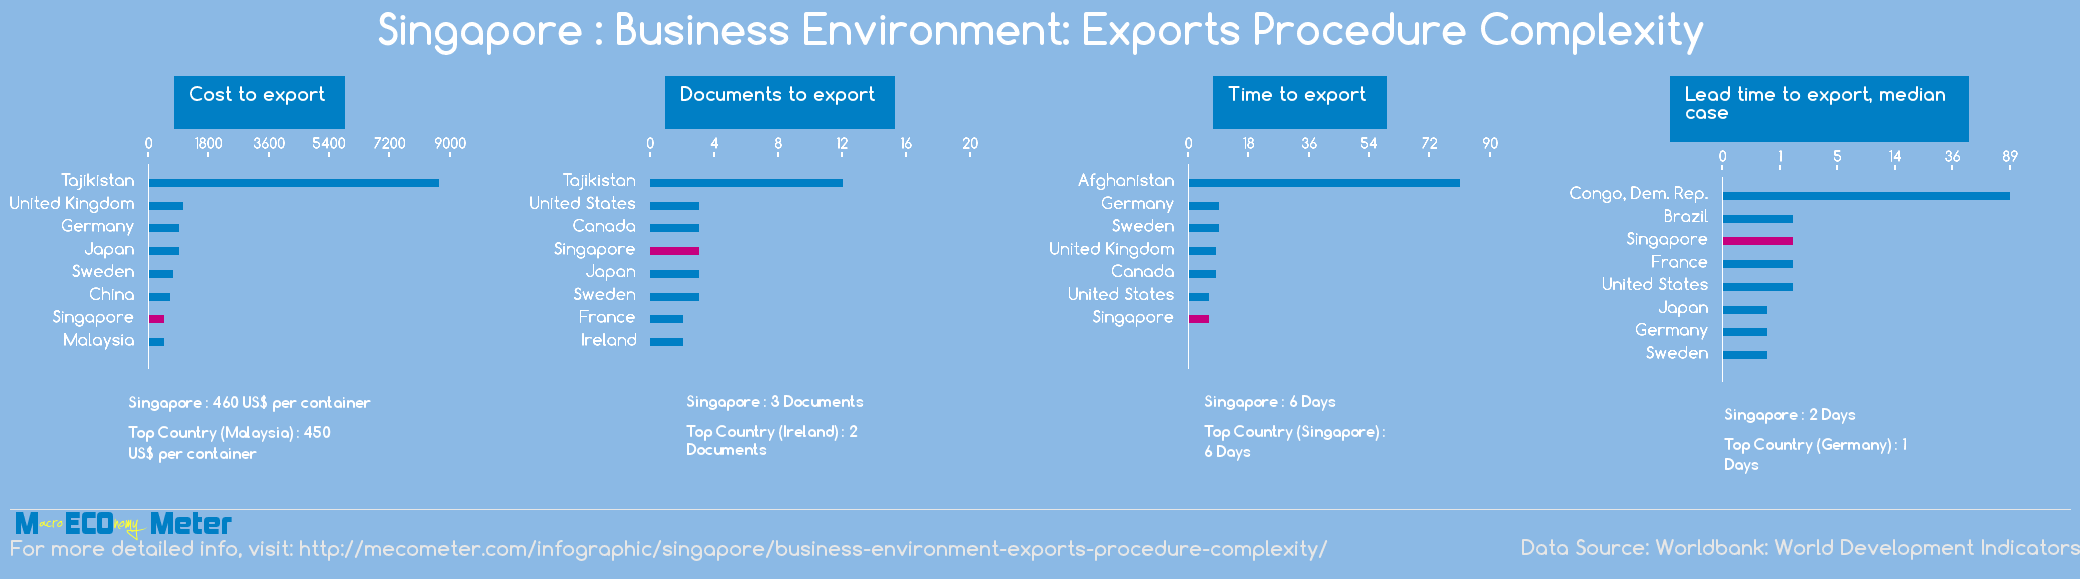 Singapore : Business Environment: Exports Procedure Complexity